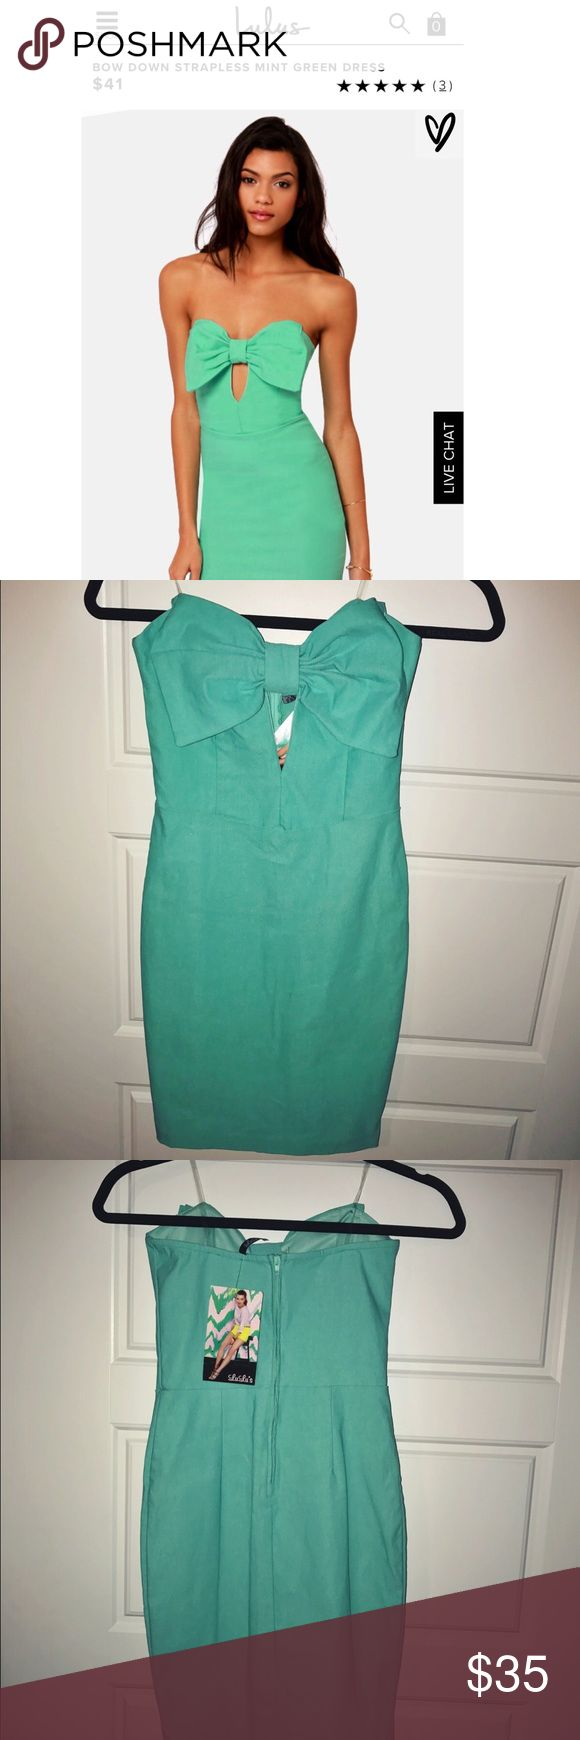 NWT💚 Mint green bowed bodycon! NEVER WORN still with tags - from Lulus website! Bow Down Strapless Mint Green Dress! Stretchy woven material for a body-con fit,m with a large bow across the strapless bustline. Hidden back zipper. Front of bodice is lined. 74% Rayon, 22% Nylon, 4% Spandex. Great for any night out, extreme flattering! 💚 Lulu's Dresses Mini